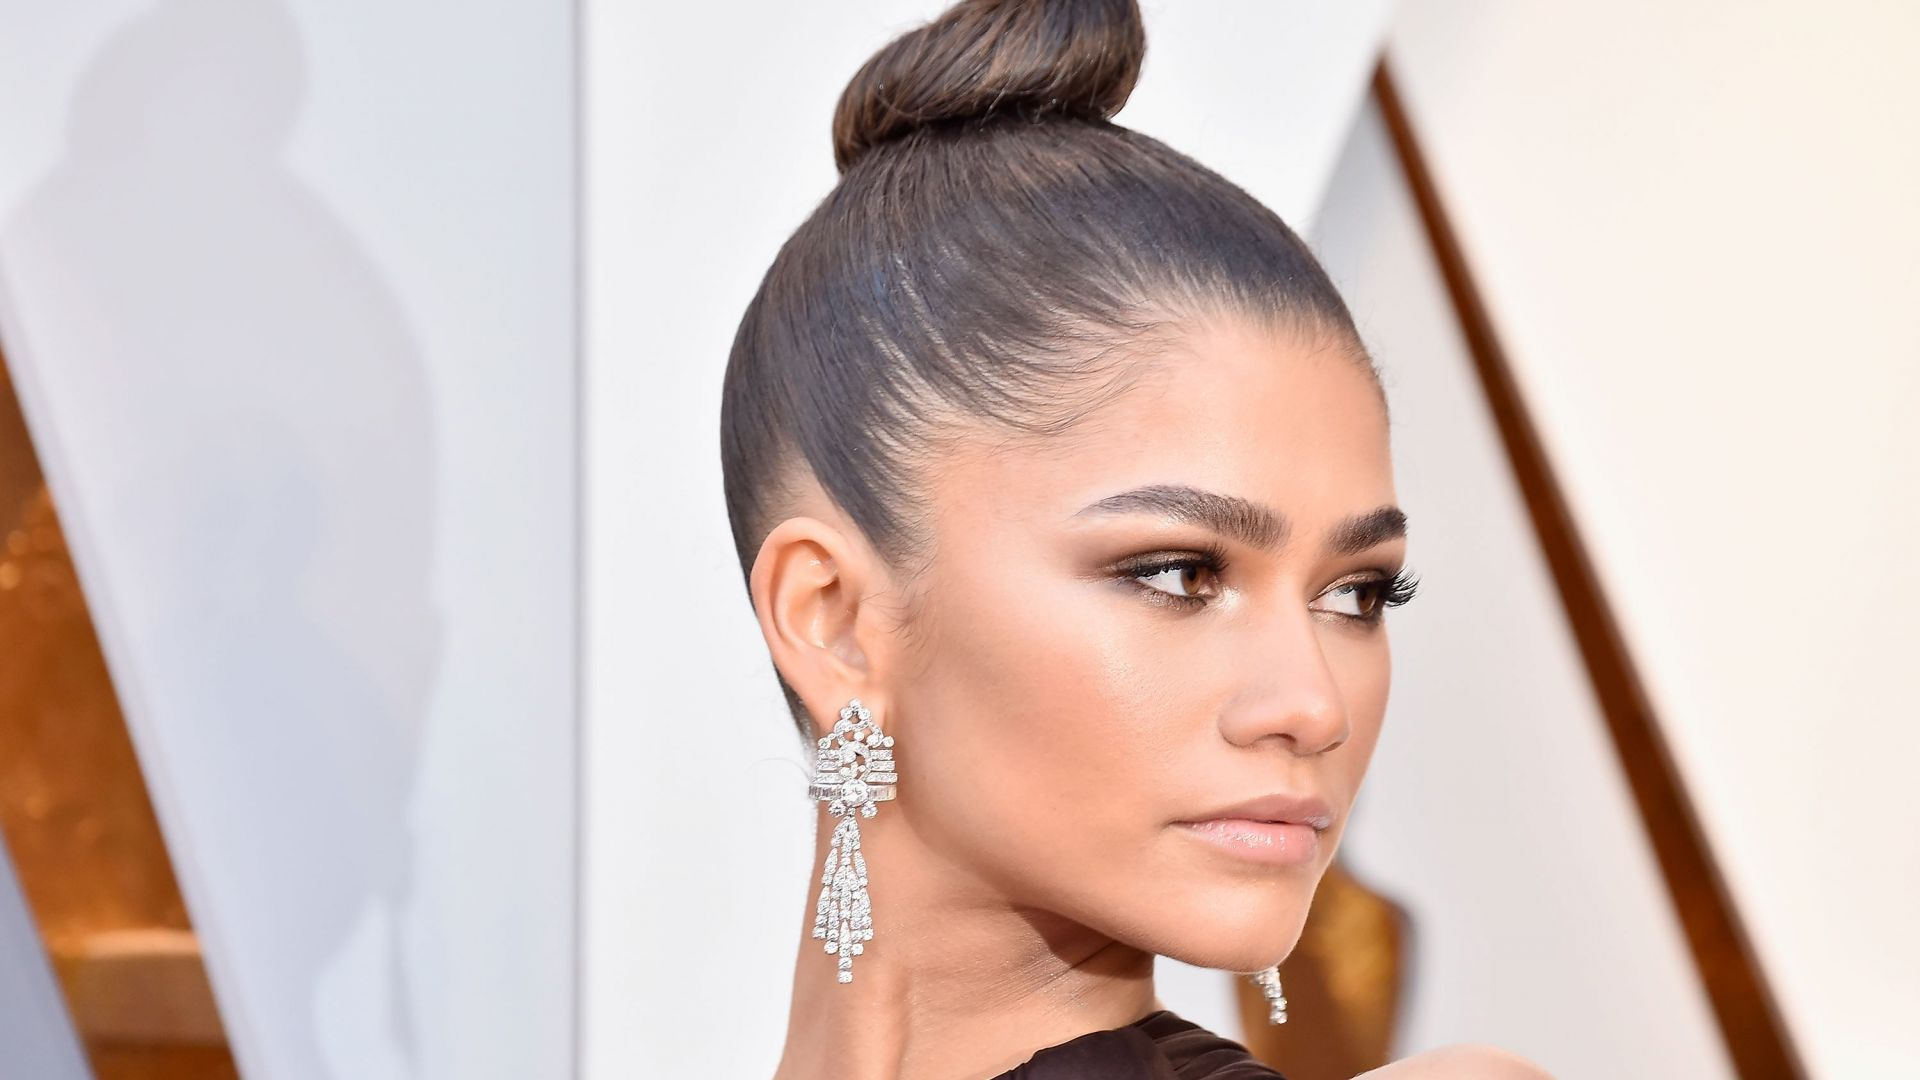 Зендая, брюнетка, Zendaya, Oscar 2018, photo, brunette, 4k (horizontal)